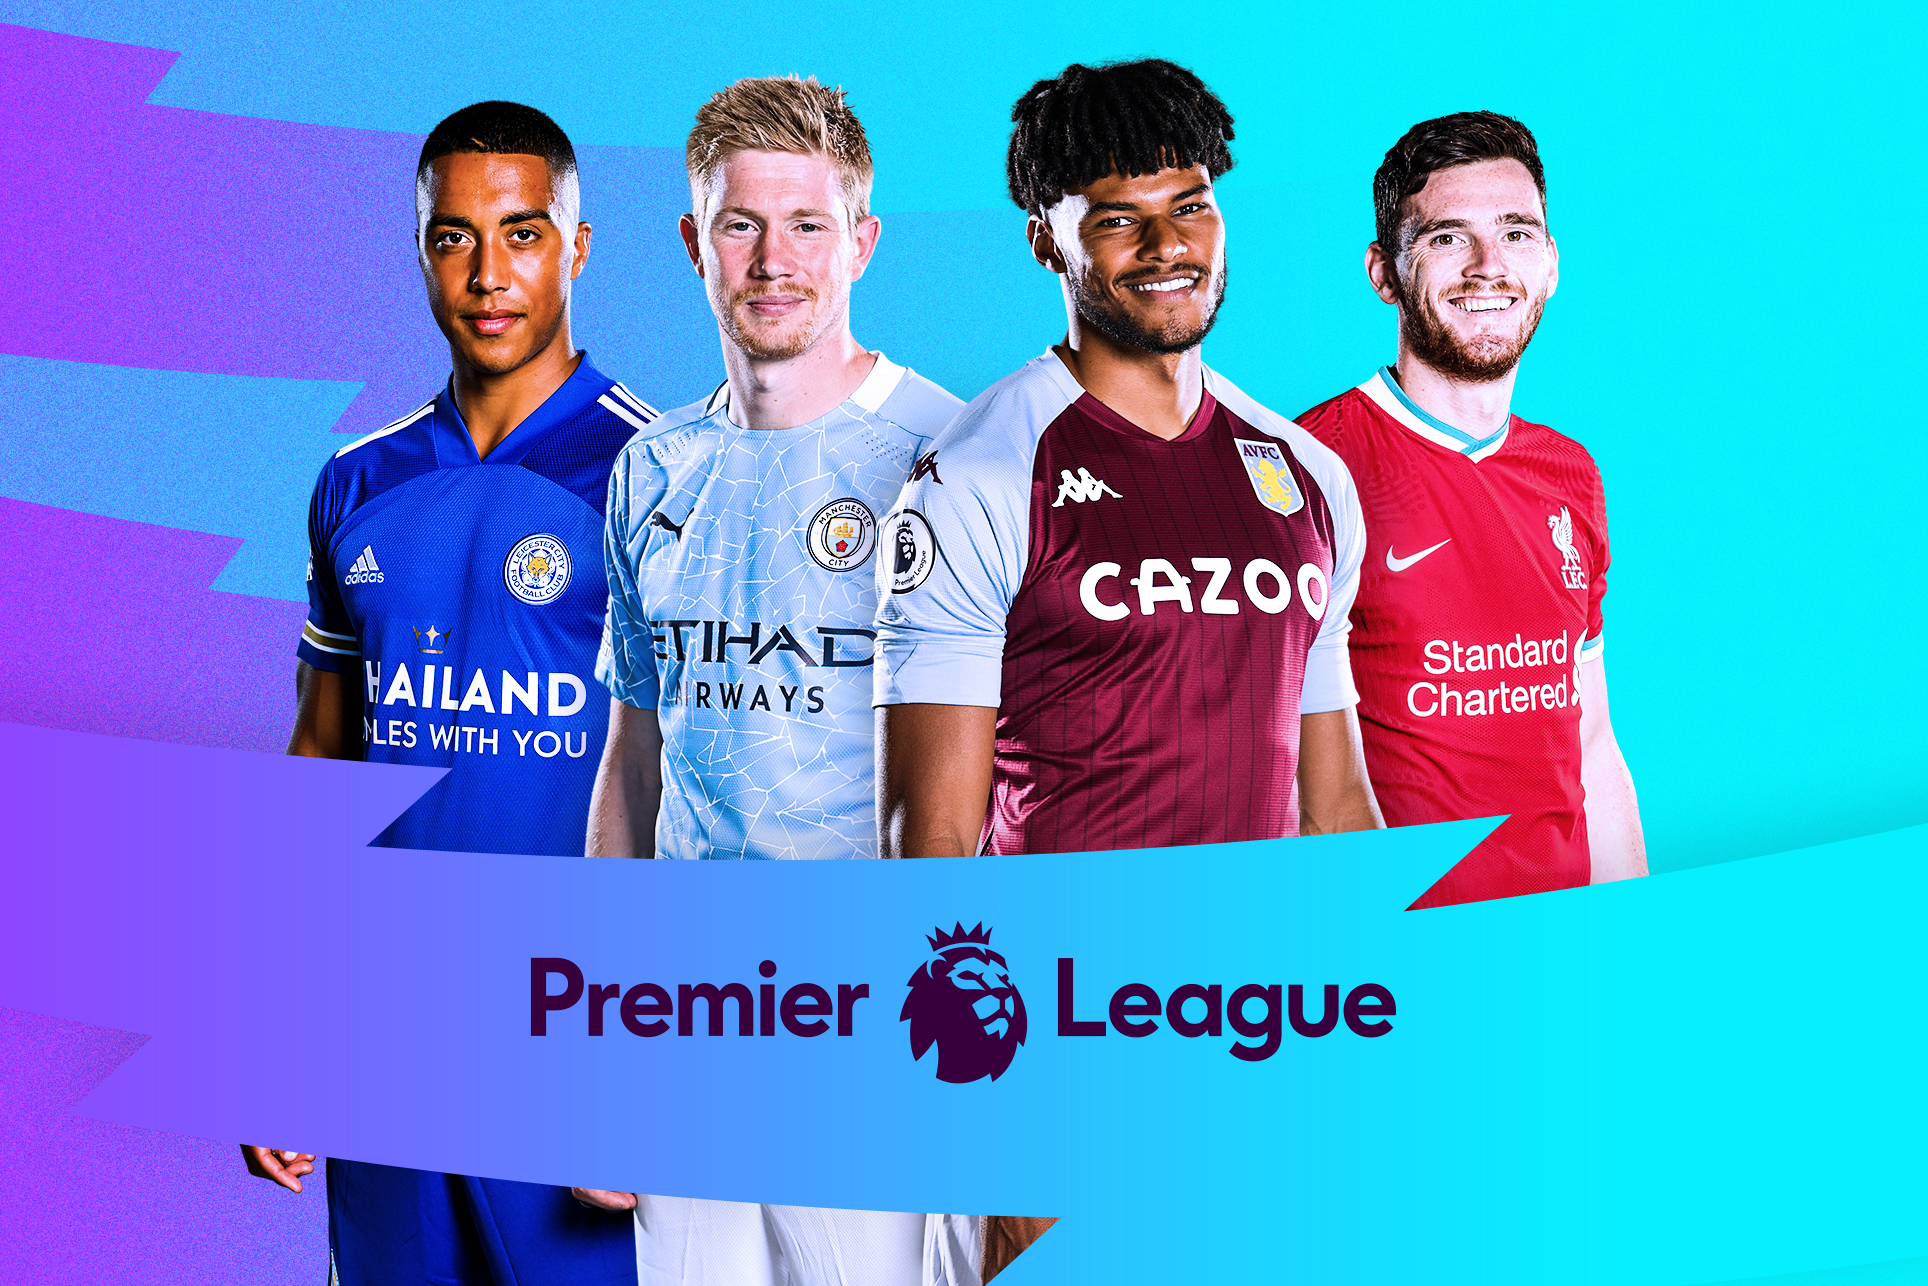 Are you ready for the 2021/22 Premier League fixtures?